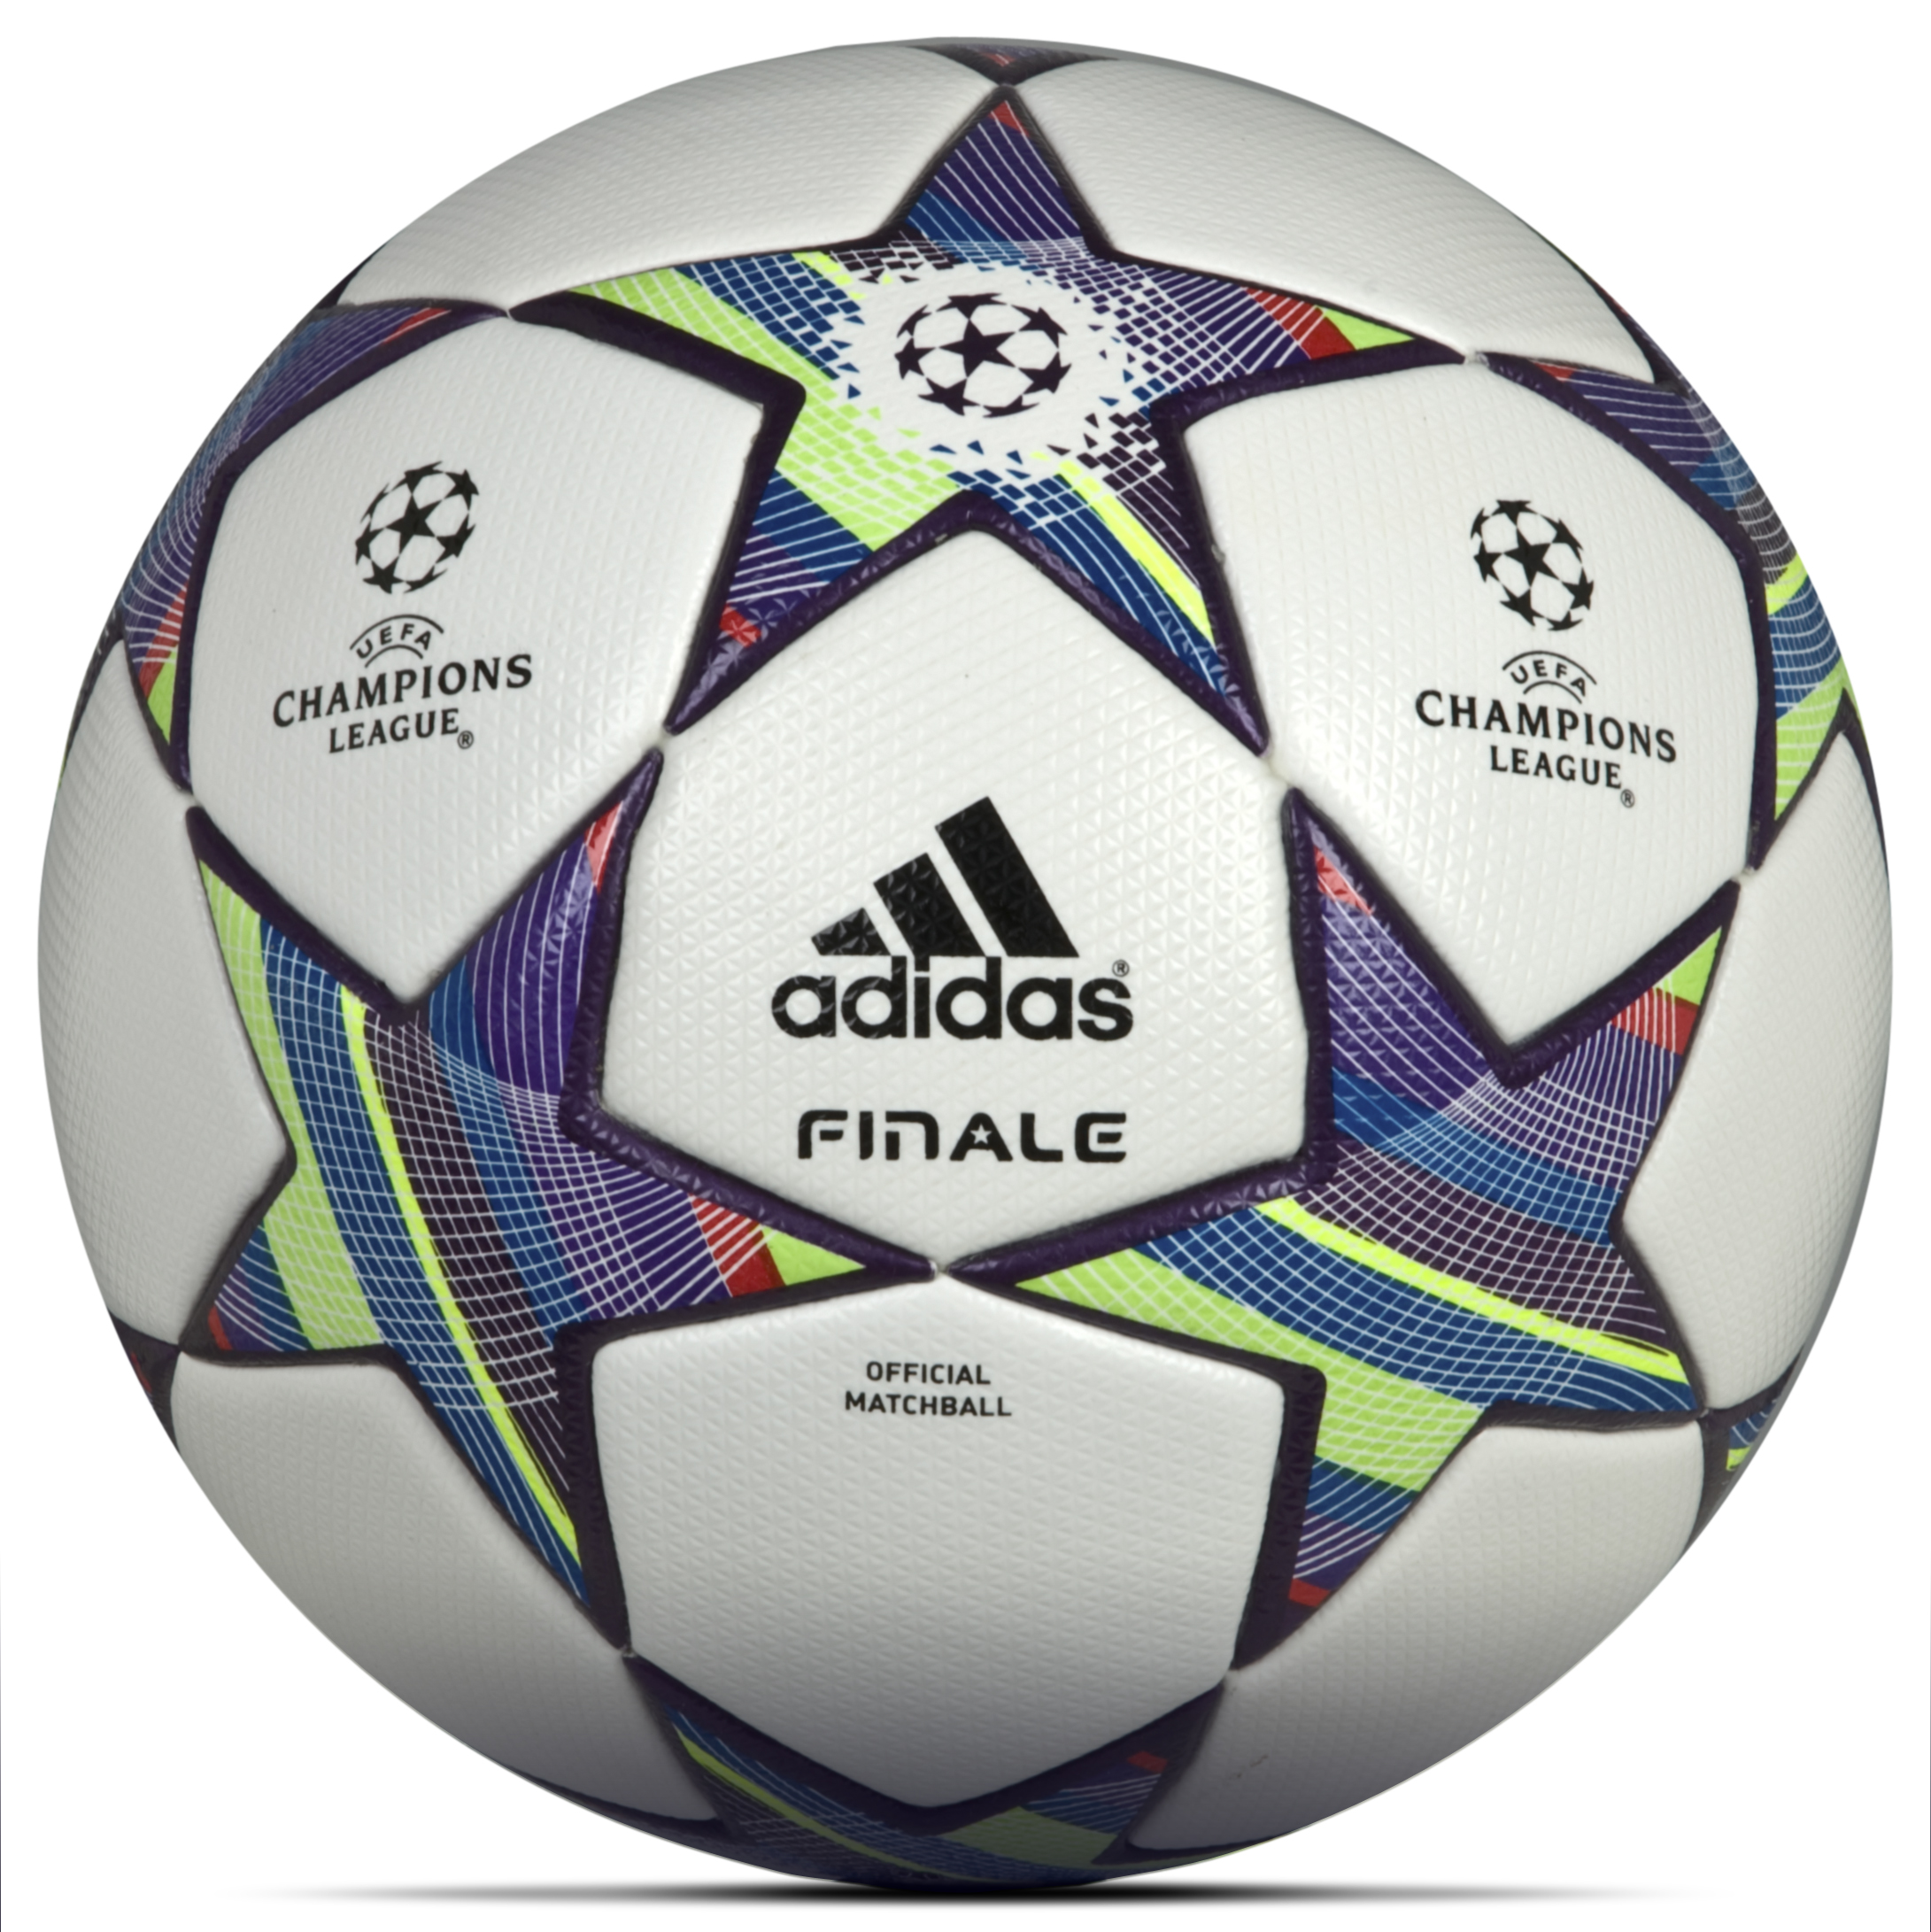 adidas Finale 11 UEFA Champions League Official Match Football - White/Ultra Lilac Met